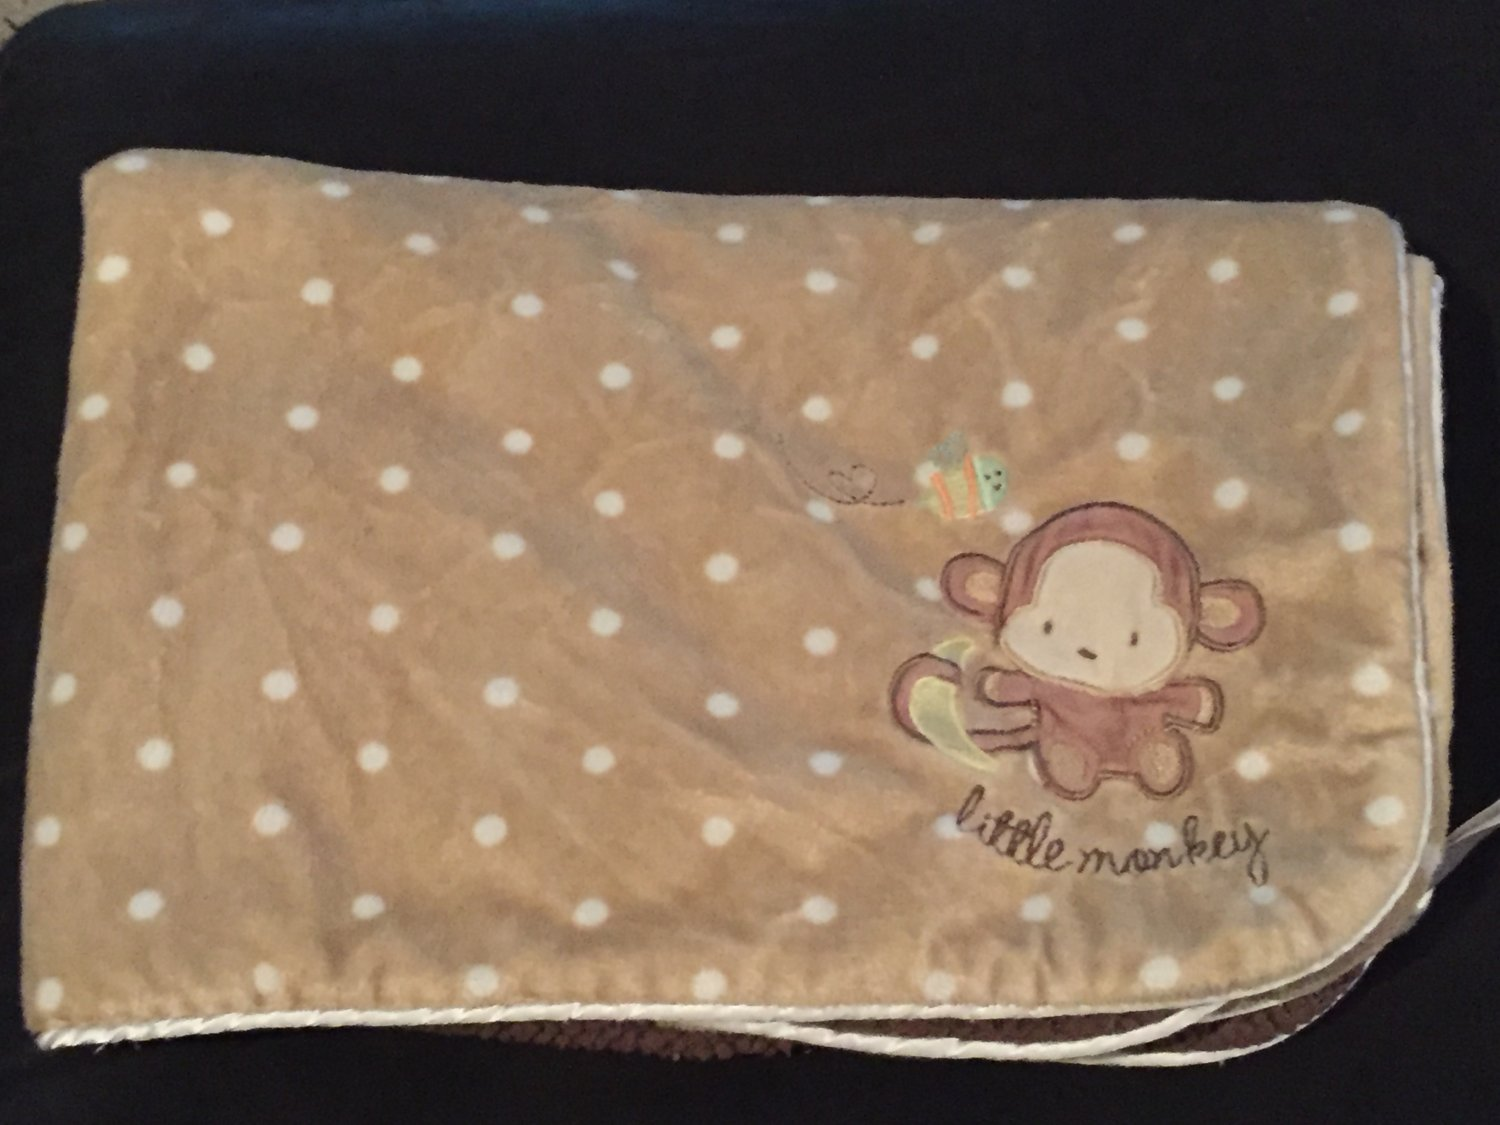 Carters Just One Year Tan Polka Dot Brown Sherpa Little Monkey Baby Blanket J4923